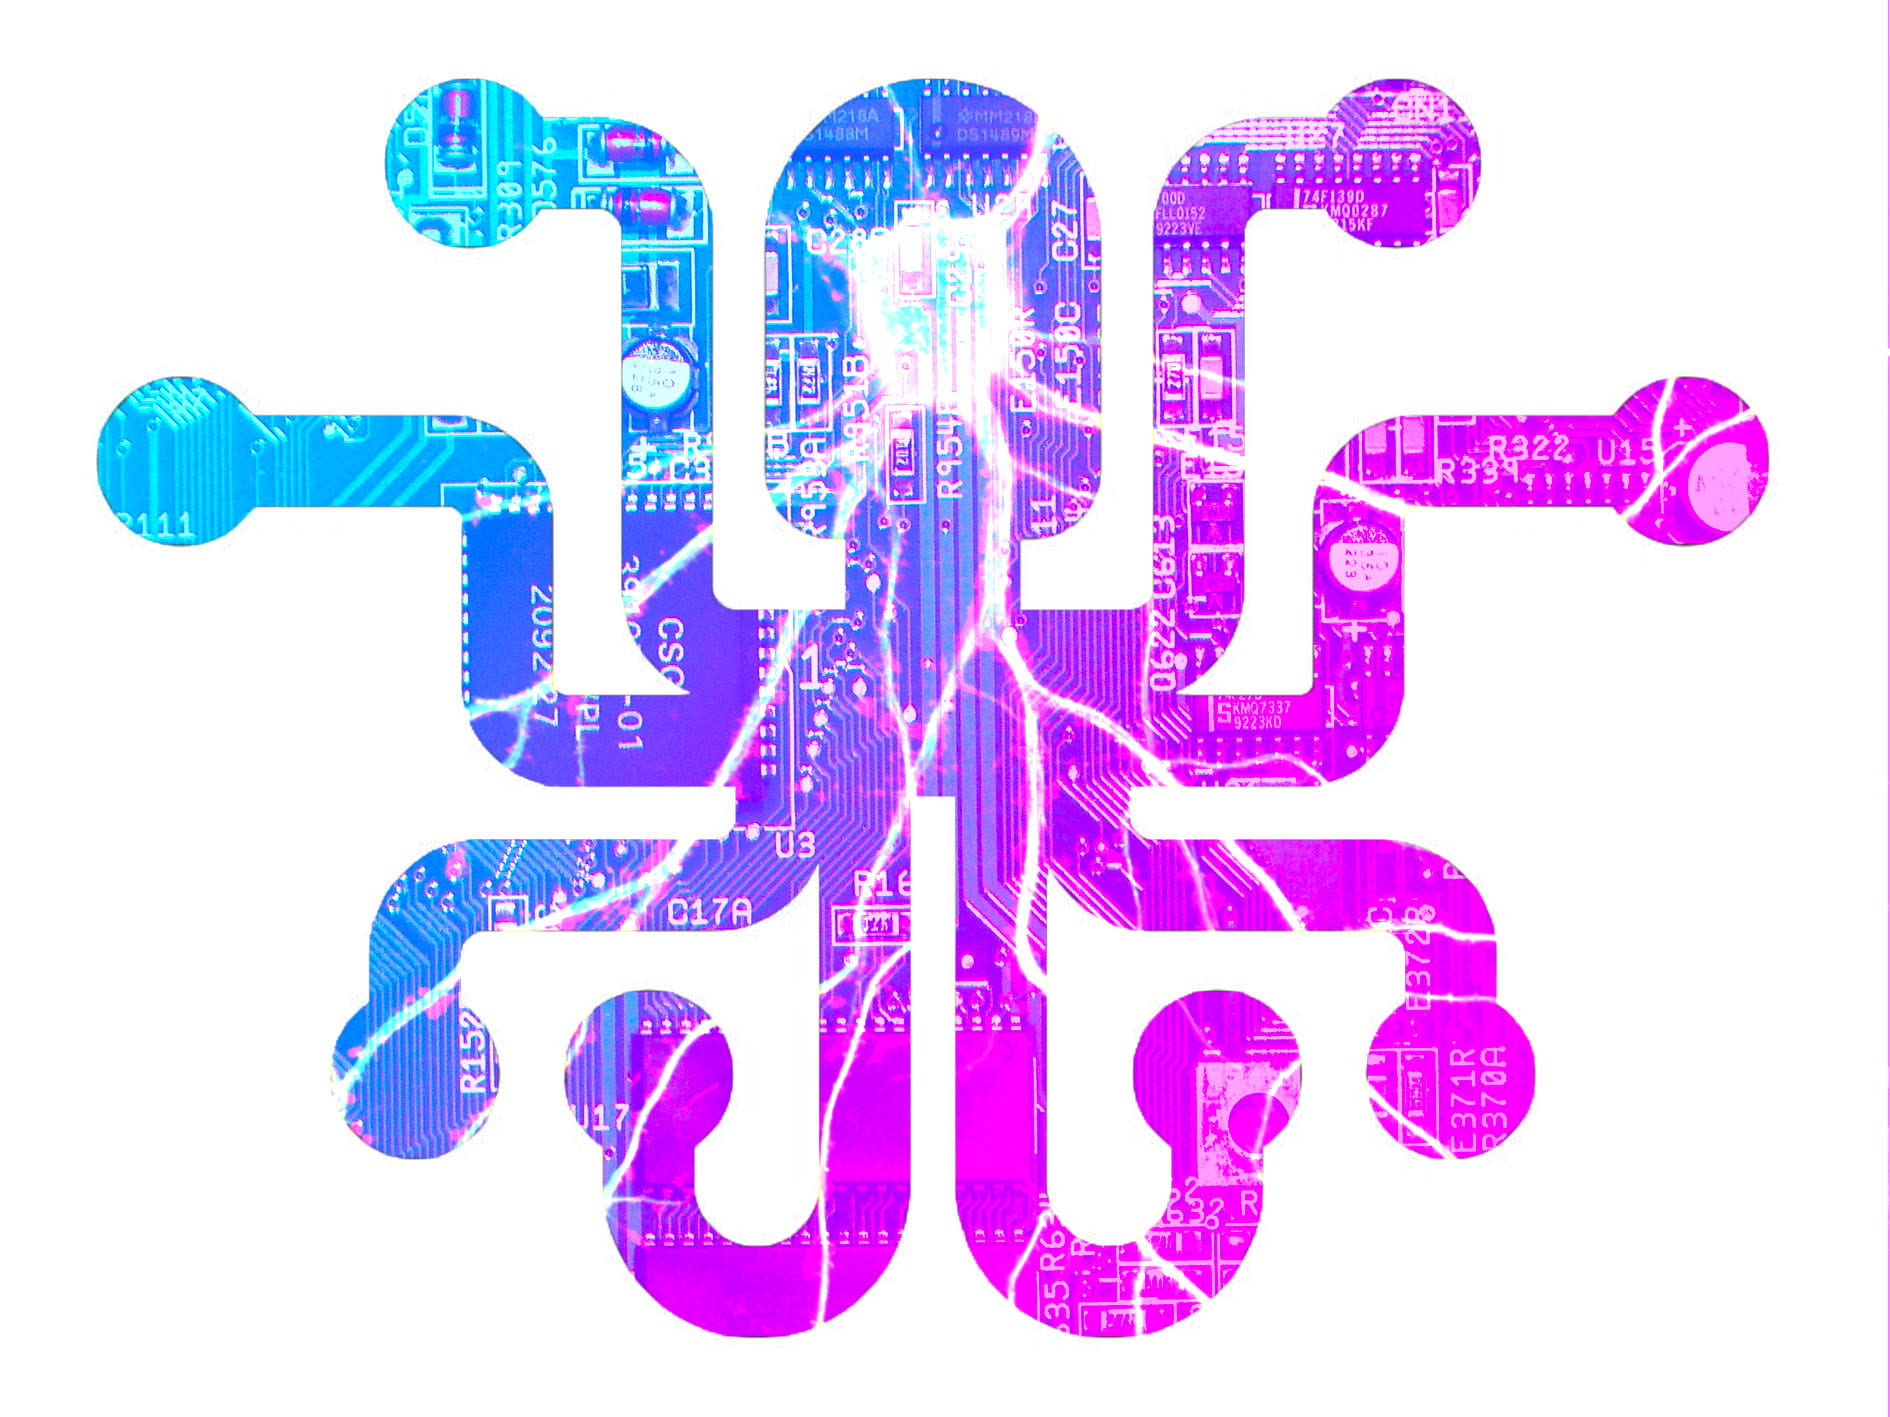 Image of our logo for the brand that we created: 'MindLink' - Organic Futuristic Style.